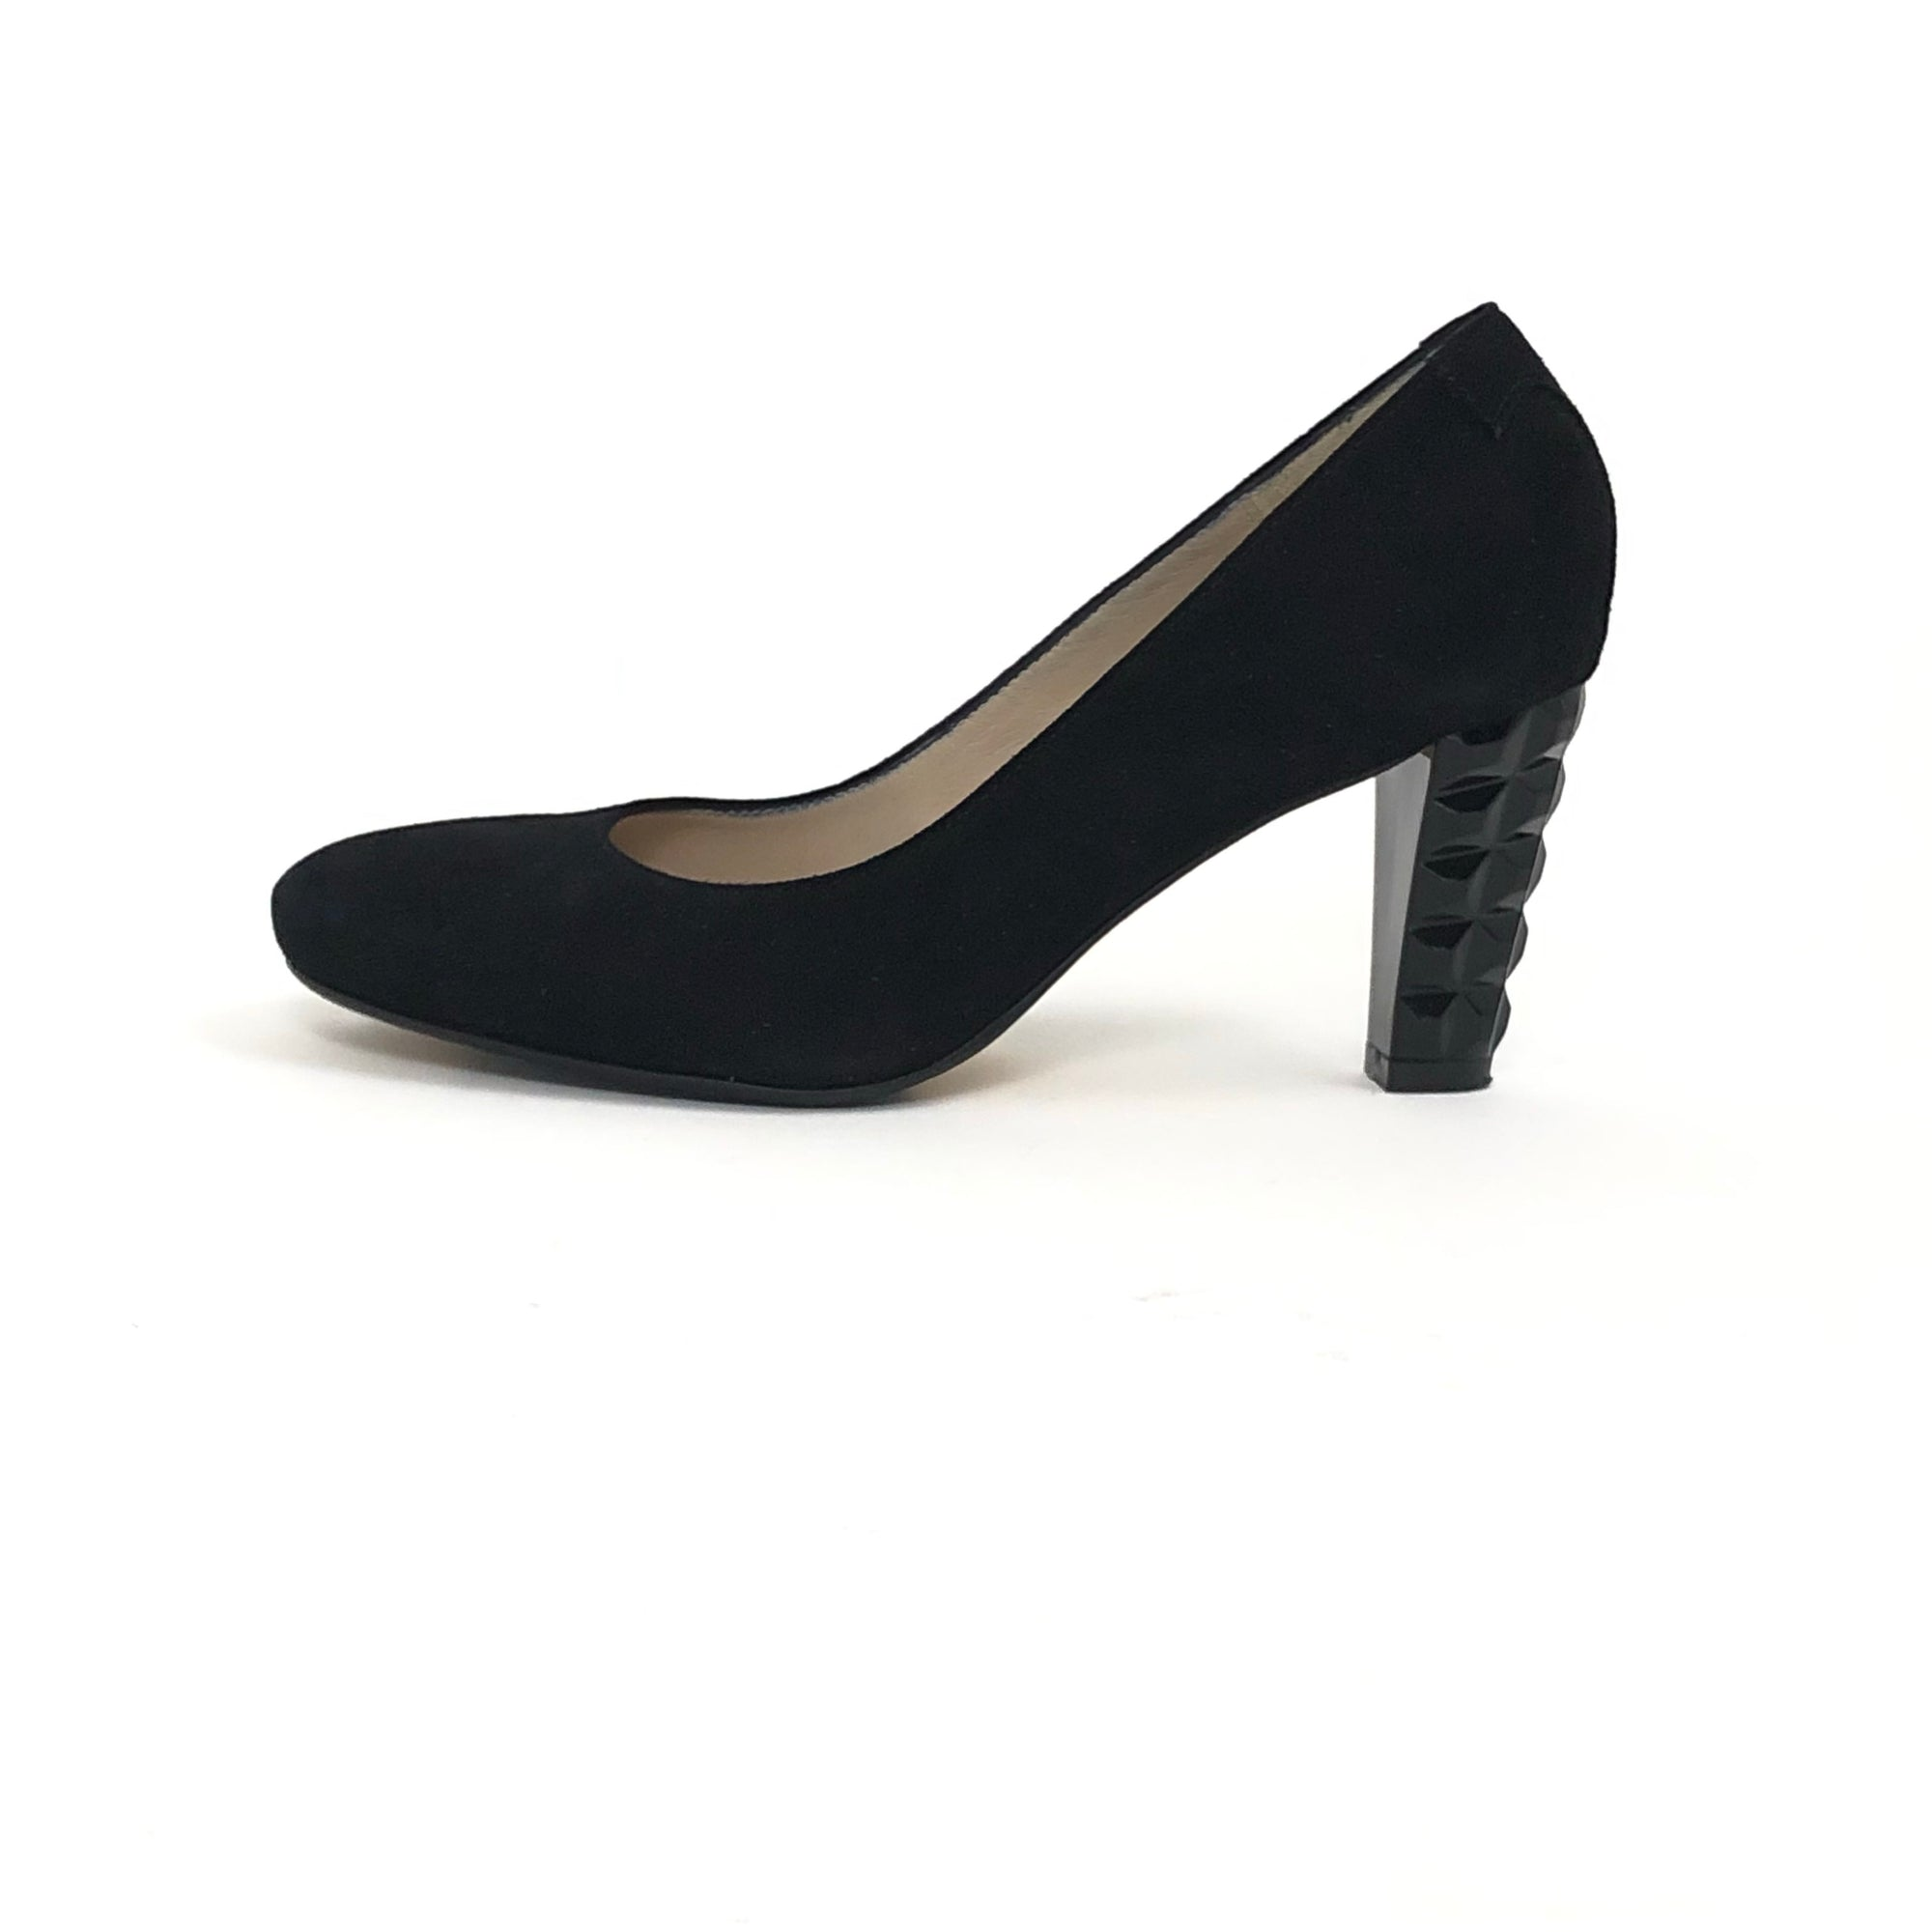 Taryn Rose Diles Camoscio Suede Pump Black, Size 7